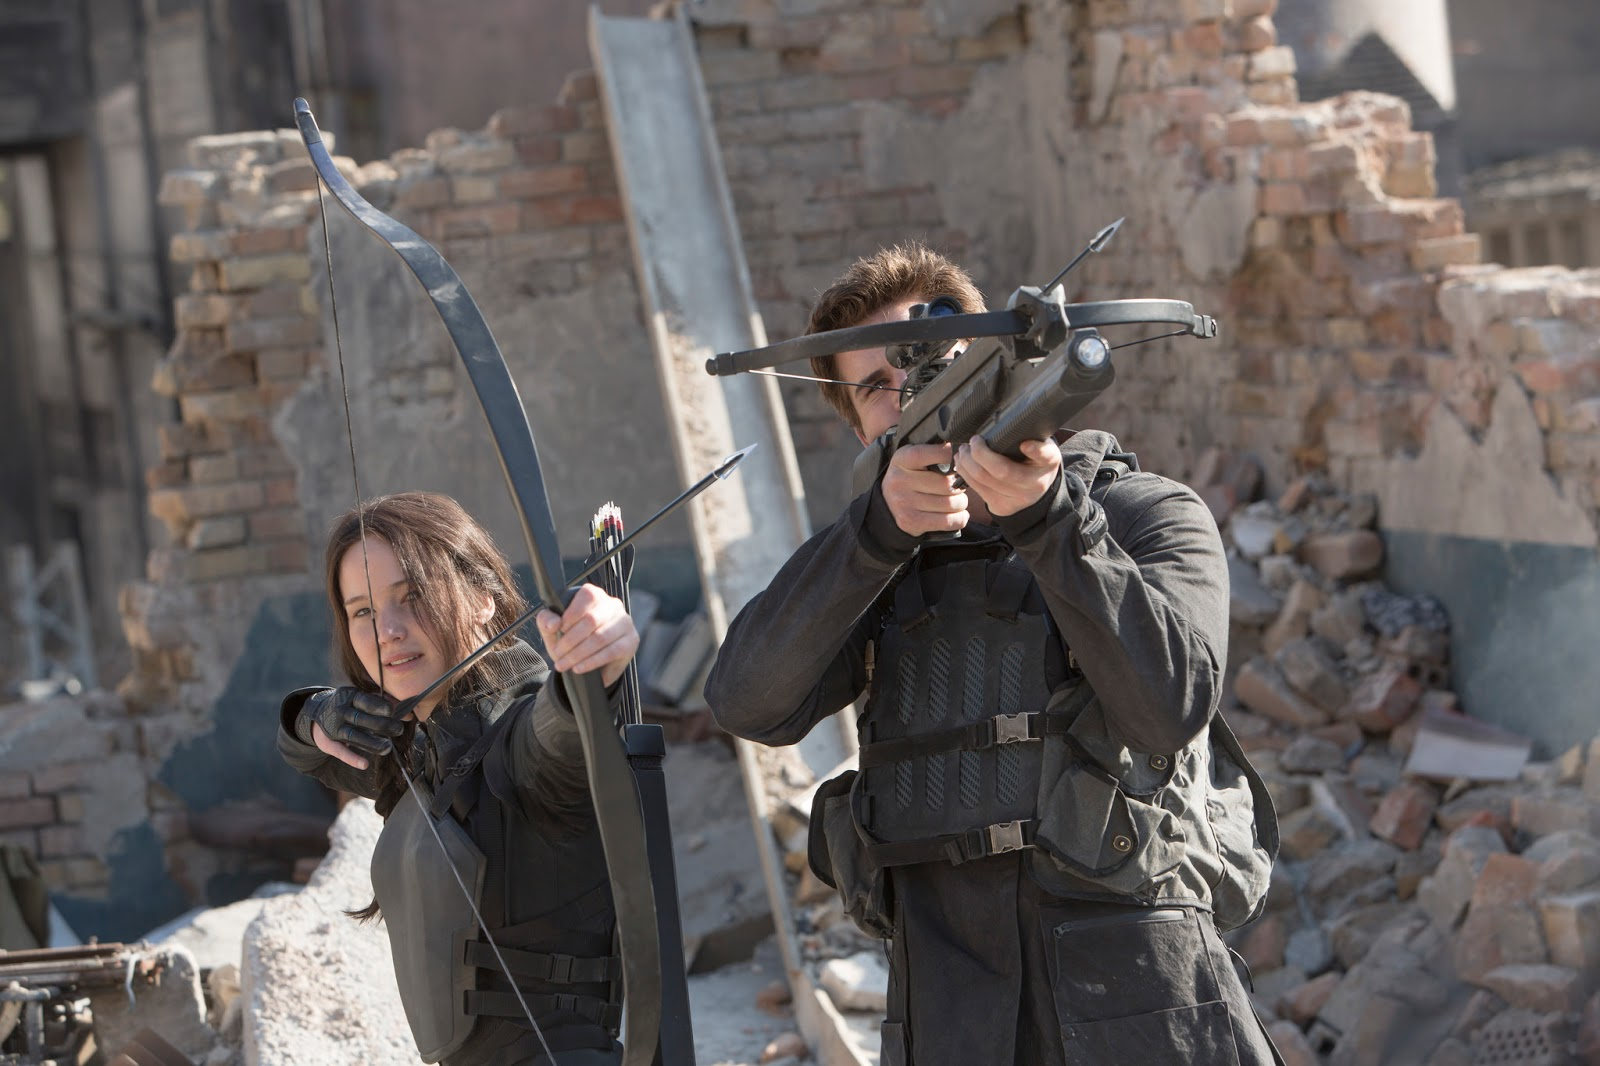 Check Out Hq New Stills From The Hunger Games Mockingjay